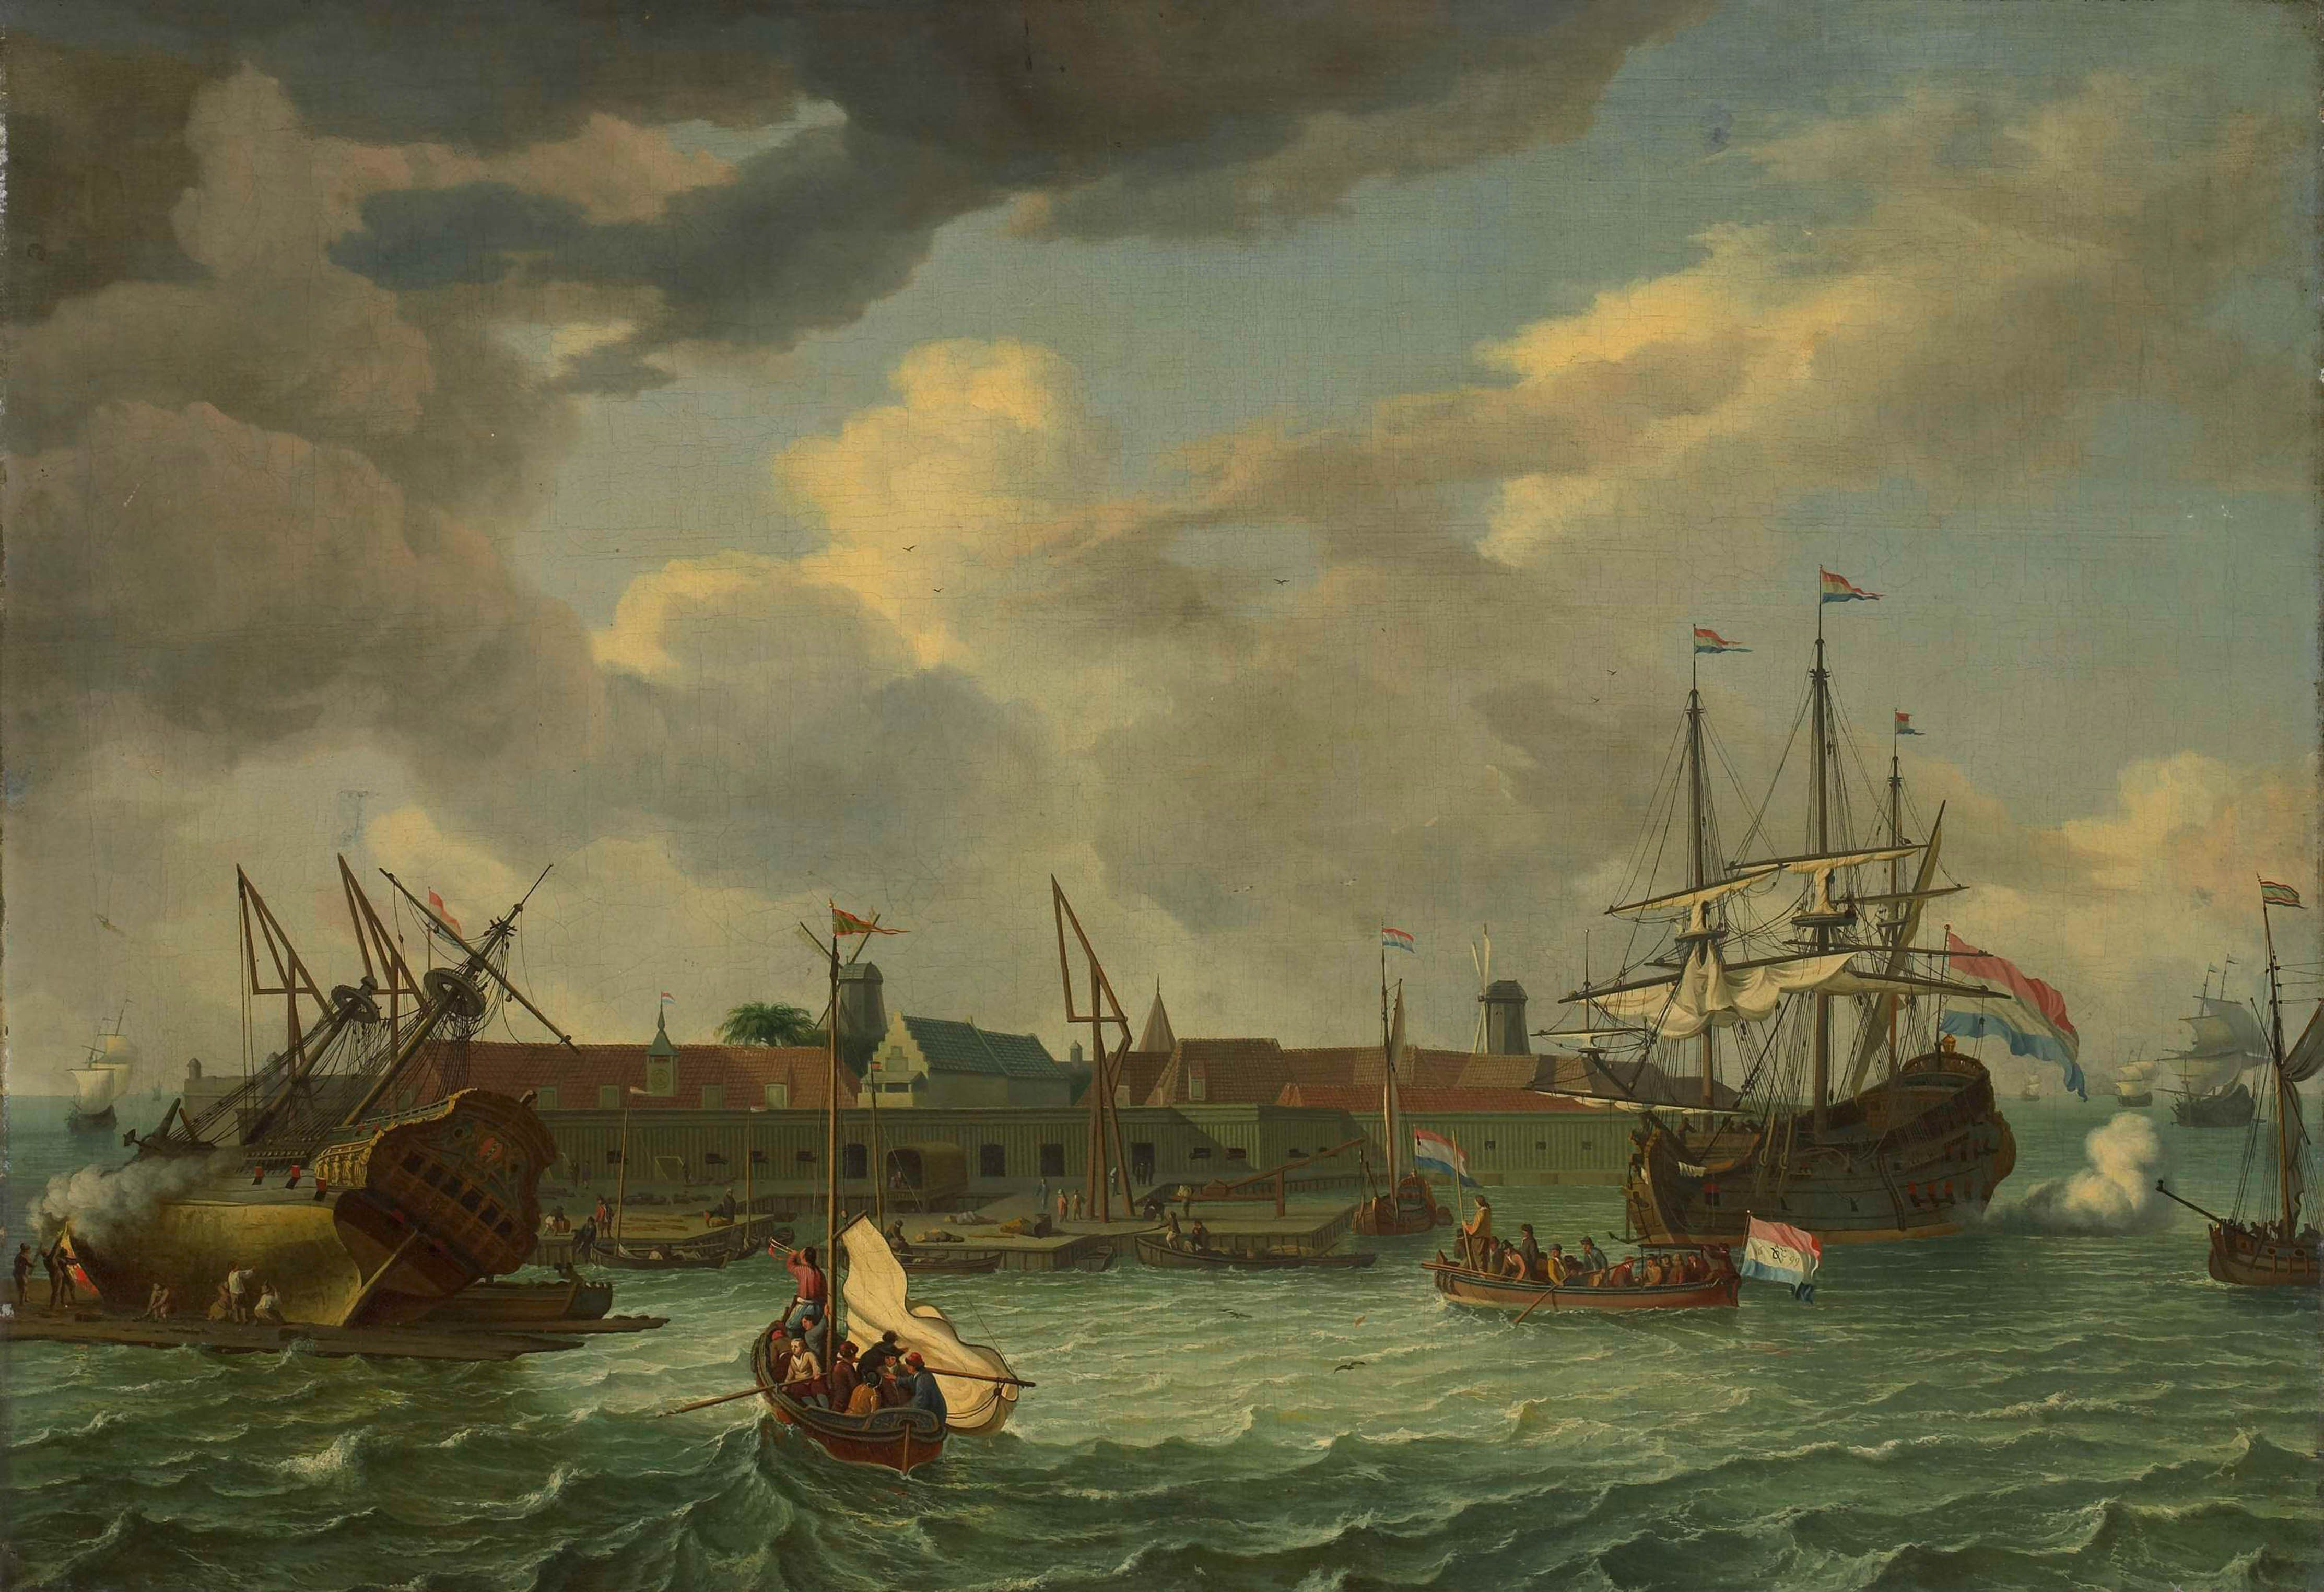 This 17th century piece of art was painted by the master Unknown in 1699. Furthermore, this artwork belongs to the Rijksmuseum's collection, which is the largest museum for Dutch art and history from the Middle Ages to the present day. This public domain artwork is being supplied with courtesy of Rijksmuseum.Creditline of the artwork: . What is more, the alignment of the digital reproduction is in landscape format with a side ratio of 3 : 2, meaning that the length is 50% longer than the width.